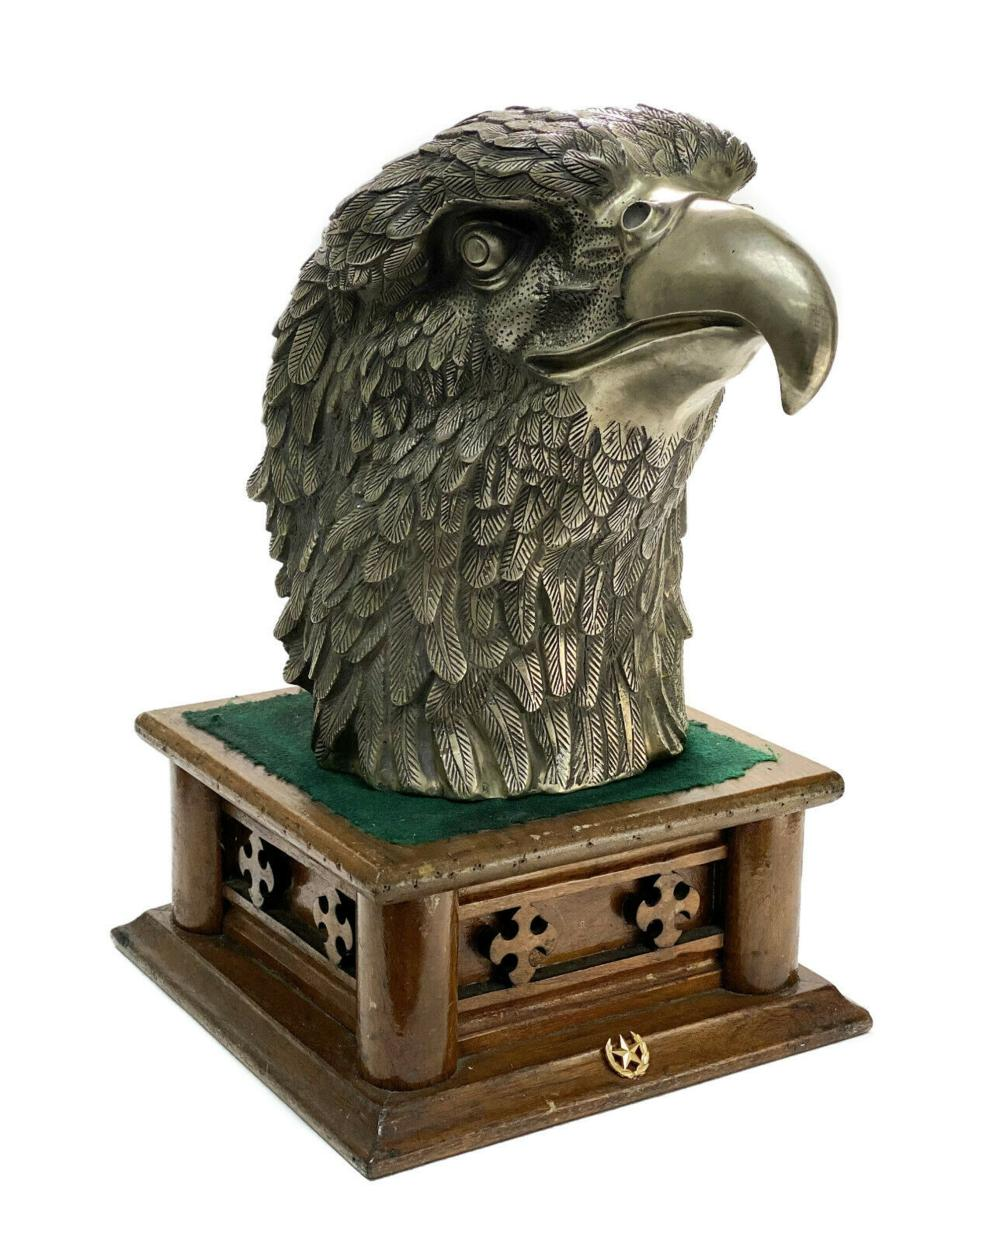 Large Chinese Silver Plate Patinated Eagle Sculpture